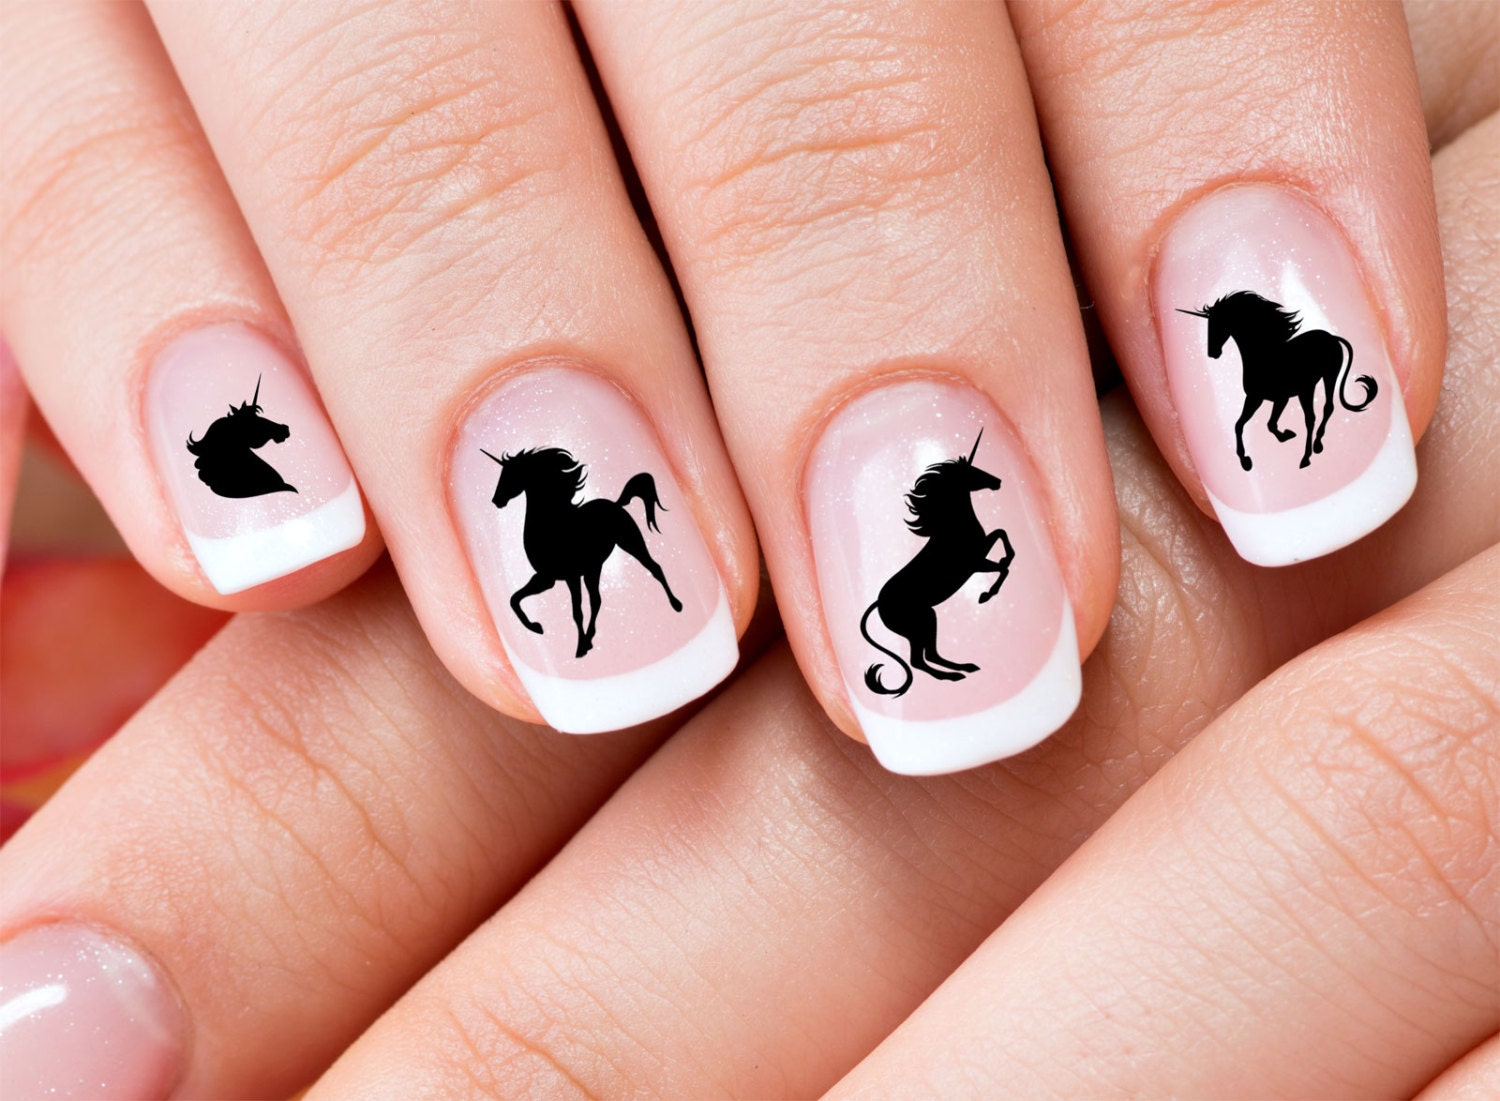 48 decals black unicorn nail art ucb water slide transfers zoom prinsesfo Image collections